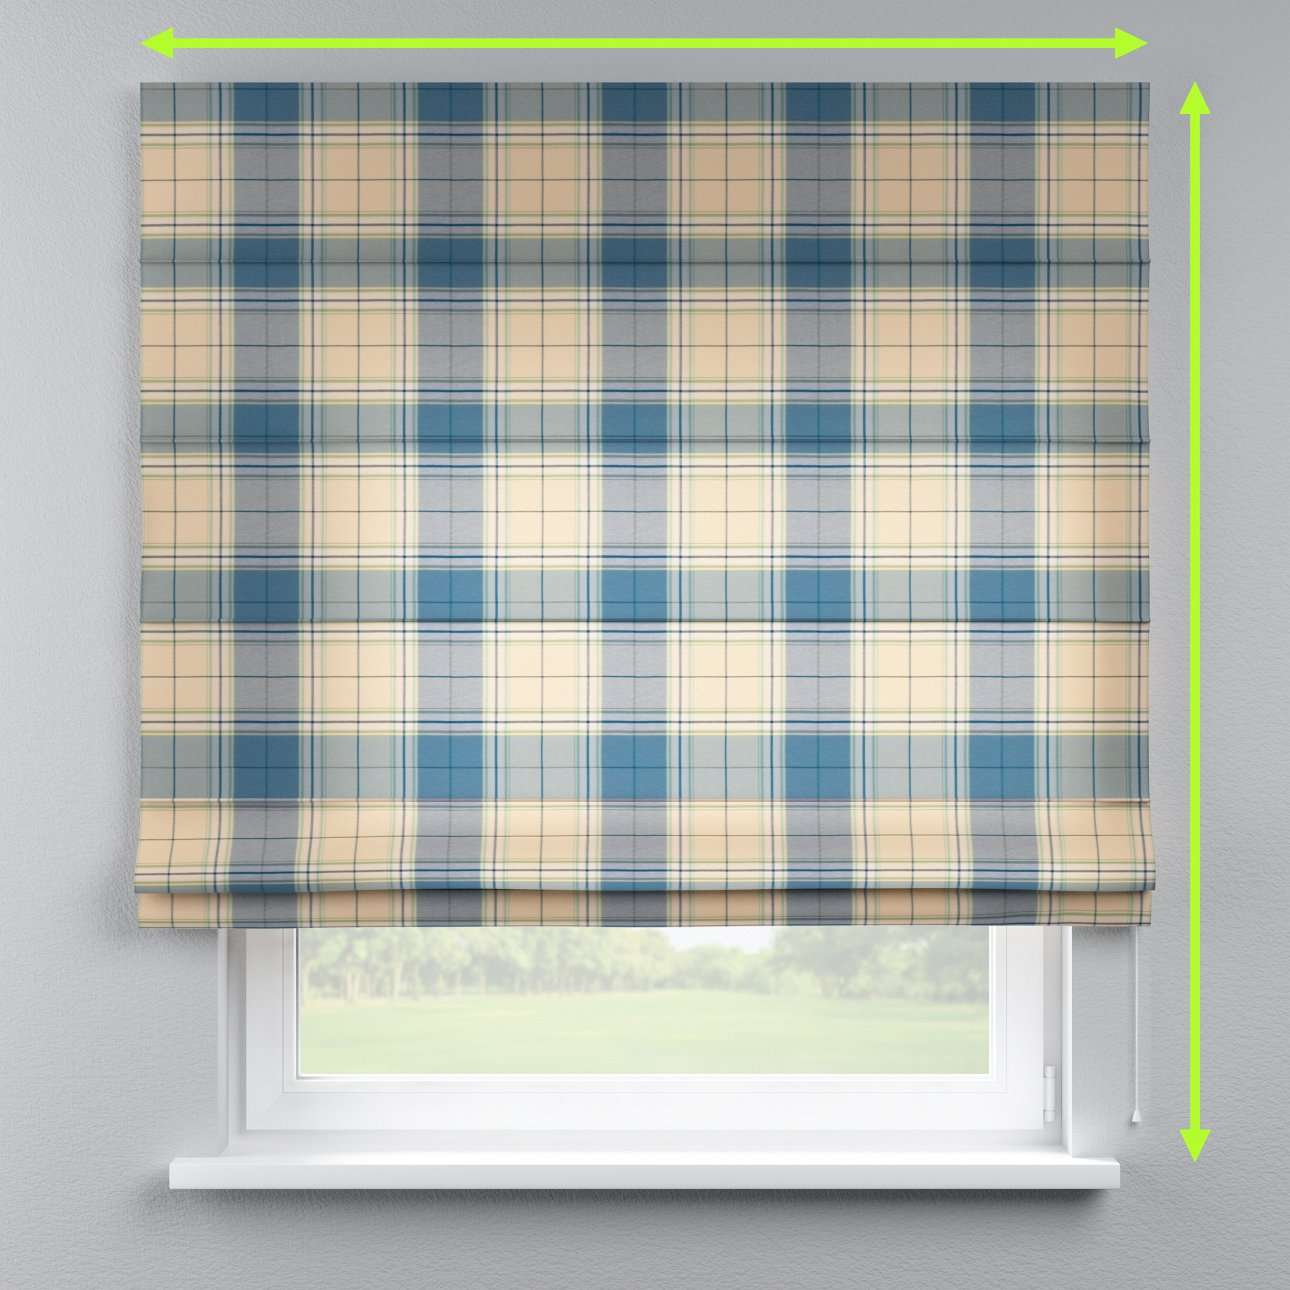 Capri roman blind in collection Bristol, fabric: 125-69